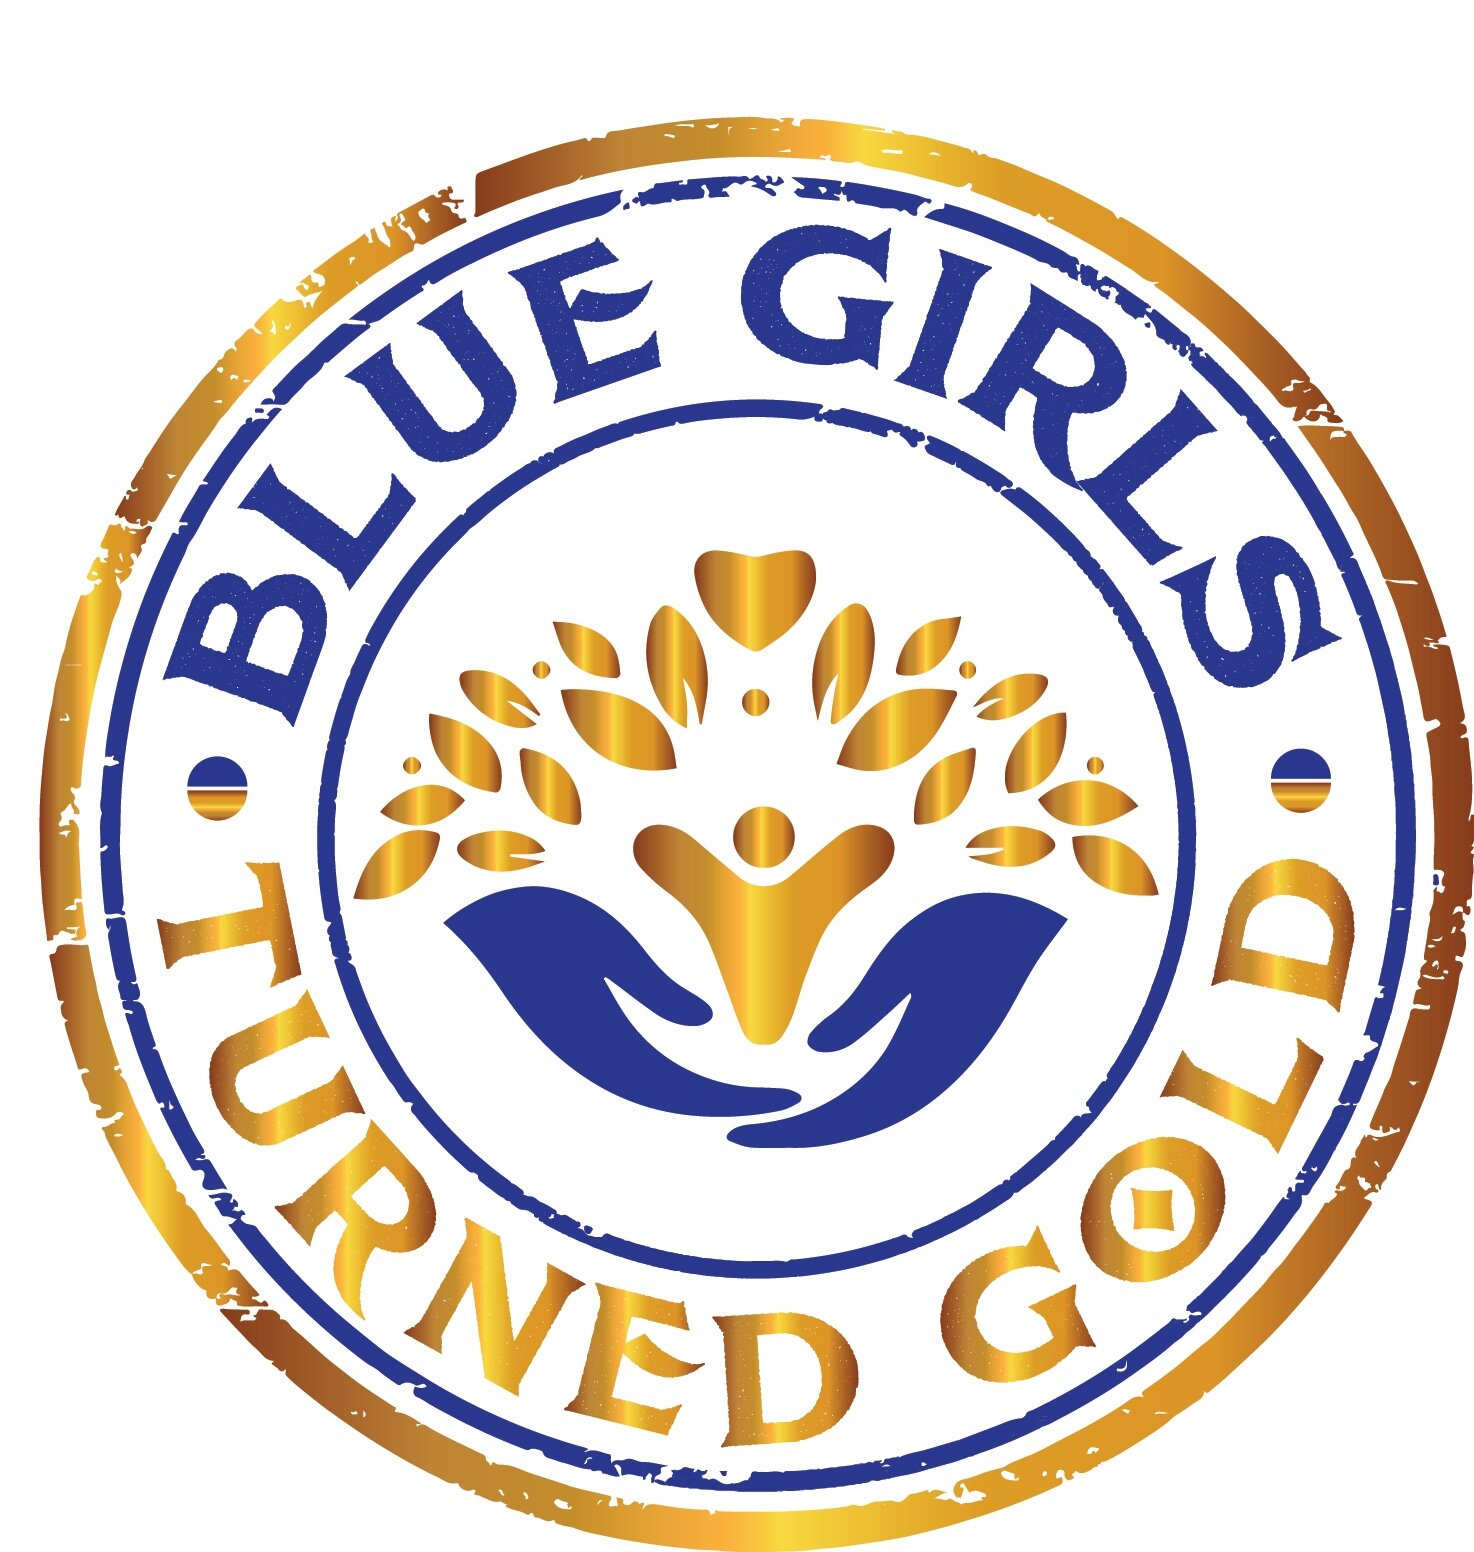 Blue Girls Turned Gold